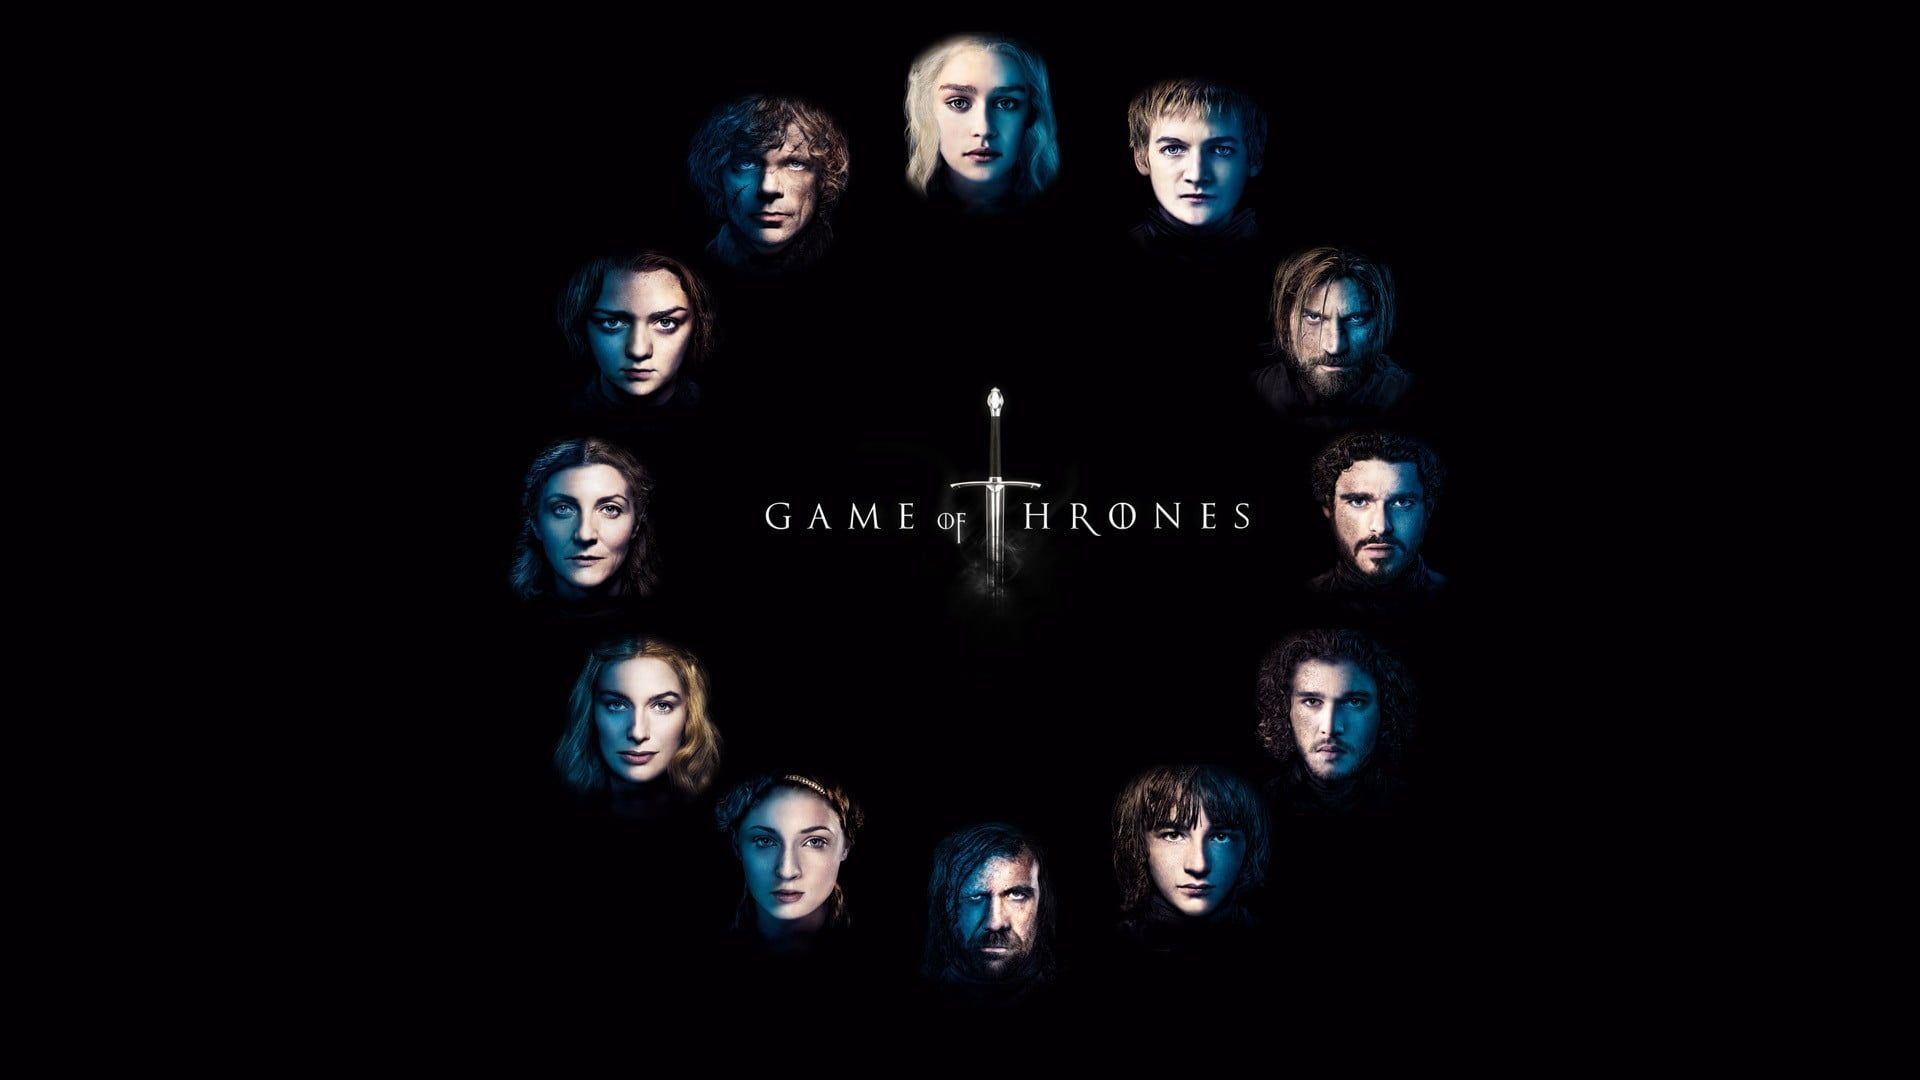 Game of Thrones hd wallpaper 1920x1080